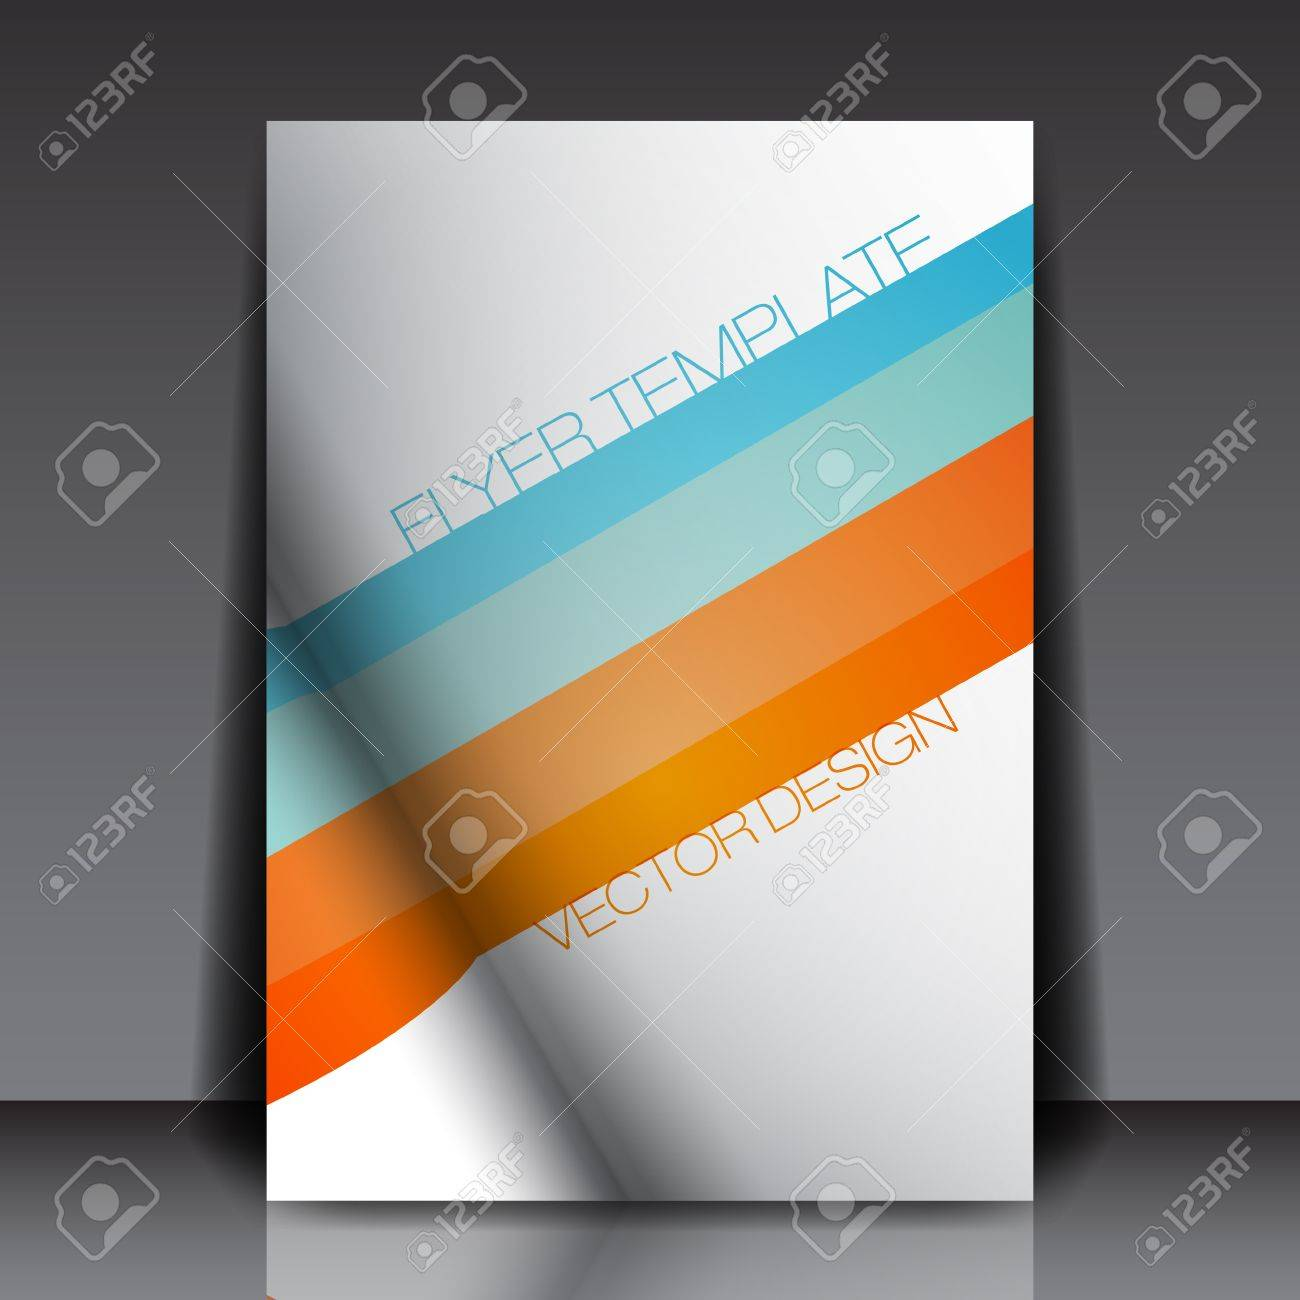 Summer Colors Design - Abstract Flyer Stock Vector - 14422818